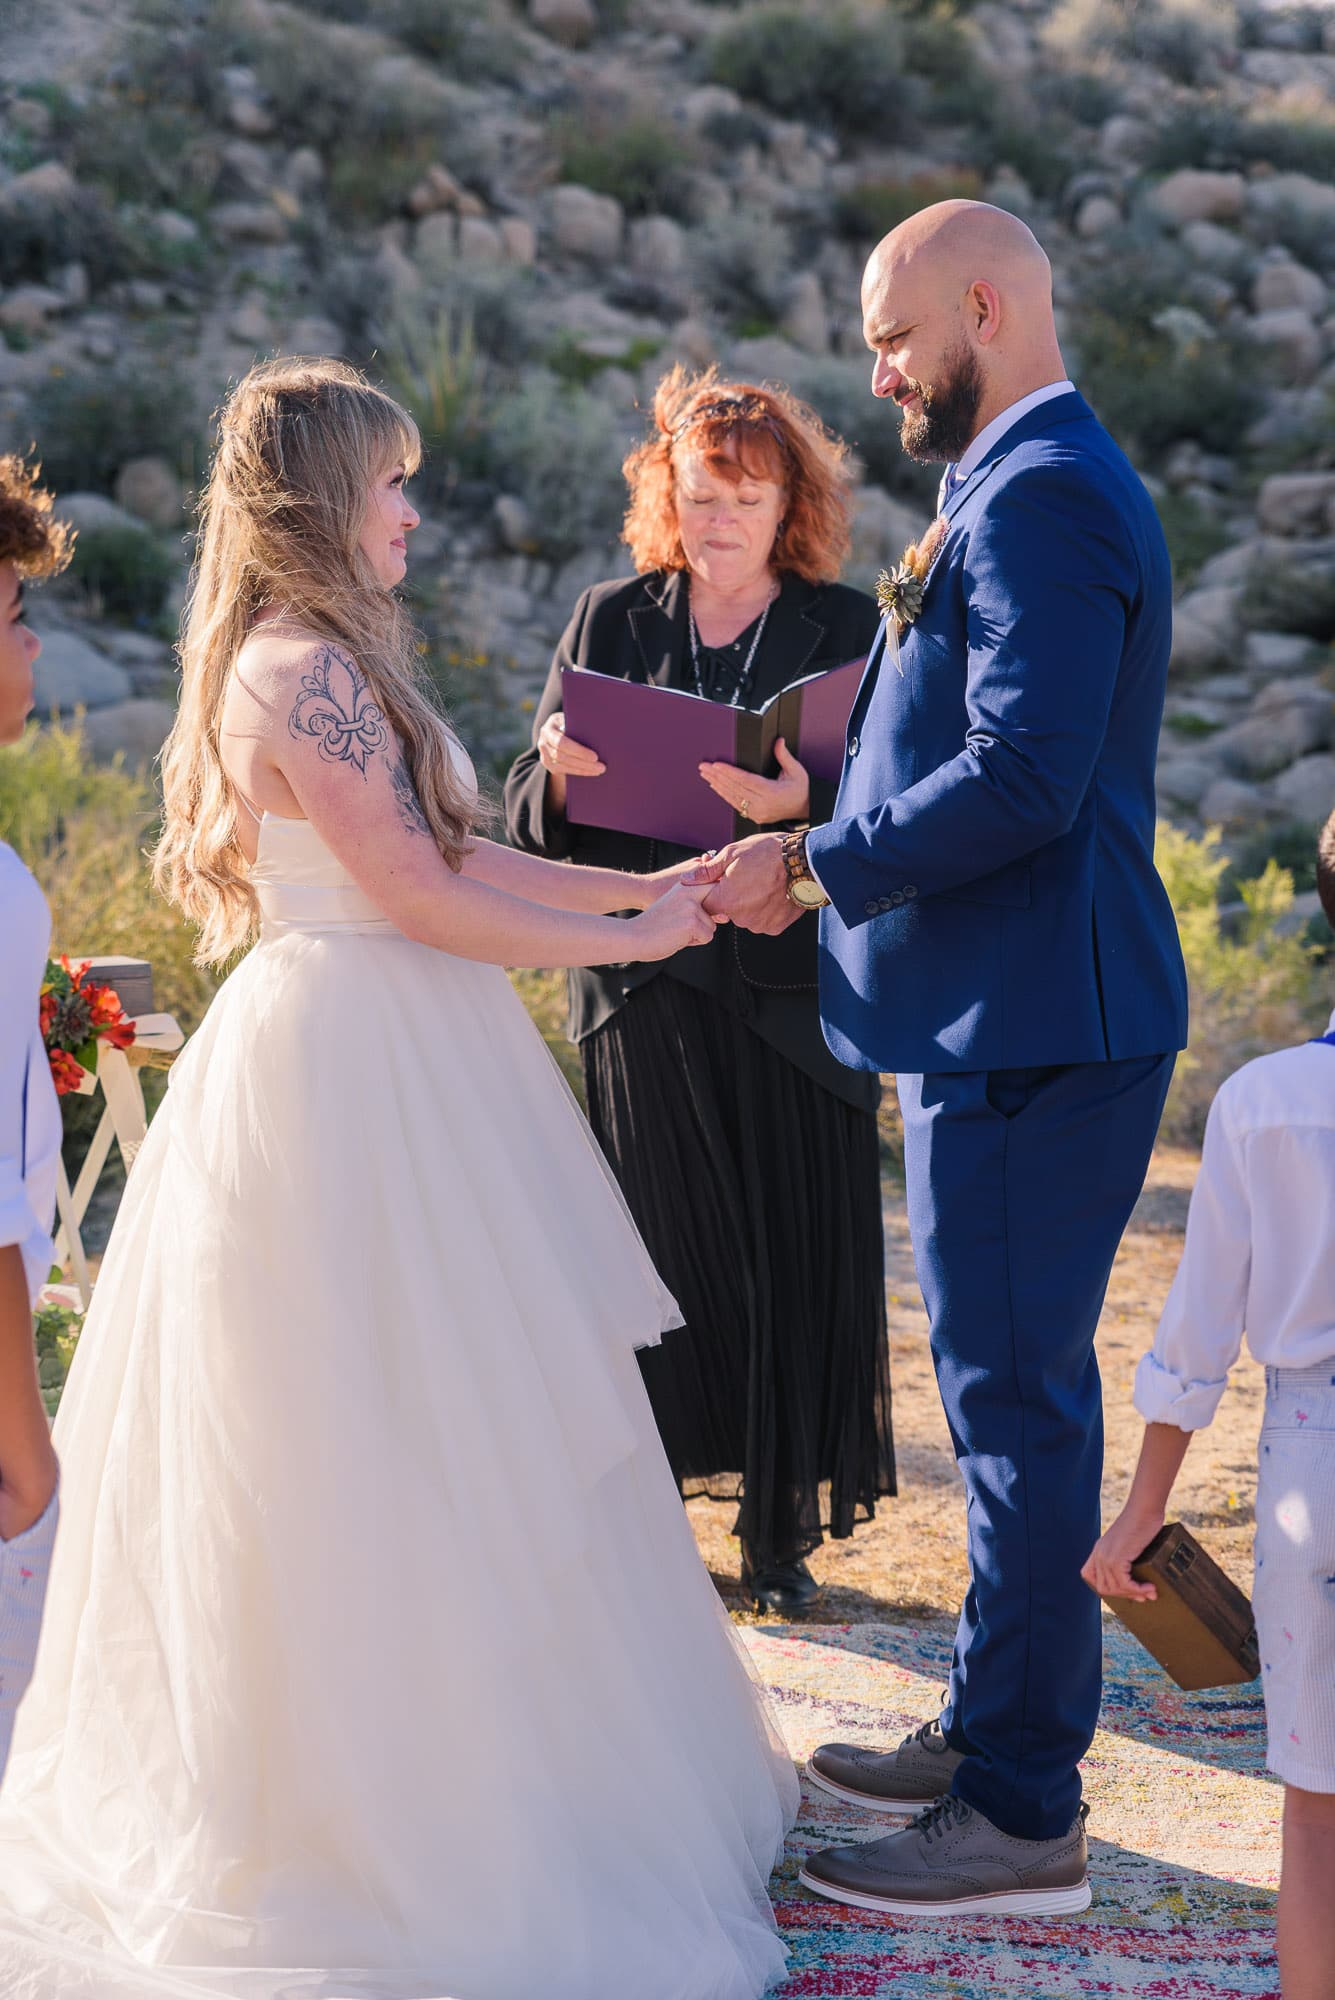 027_Alan_and_Heidi_Joshua_Tree_Spring_Elopement